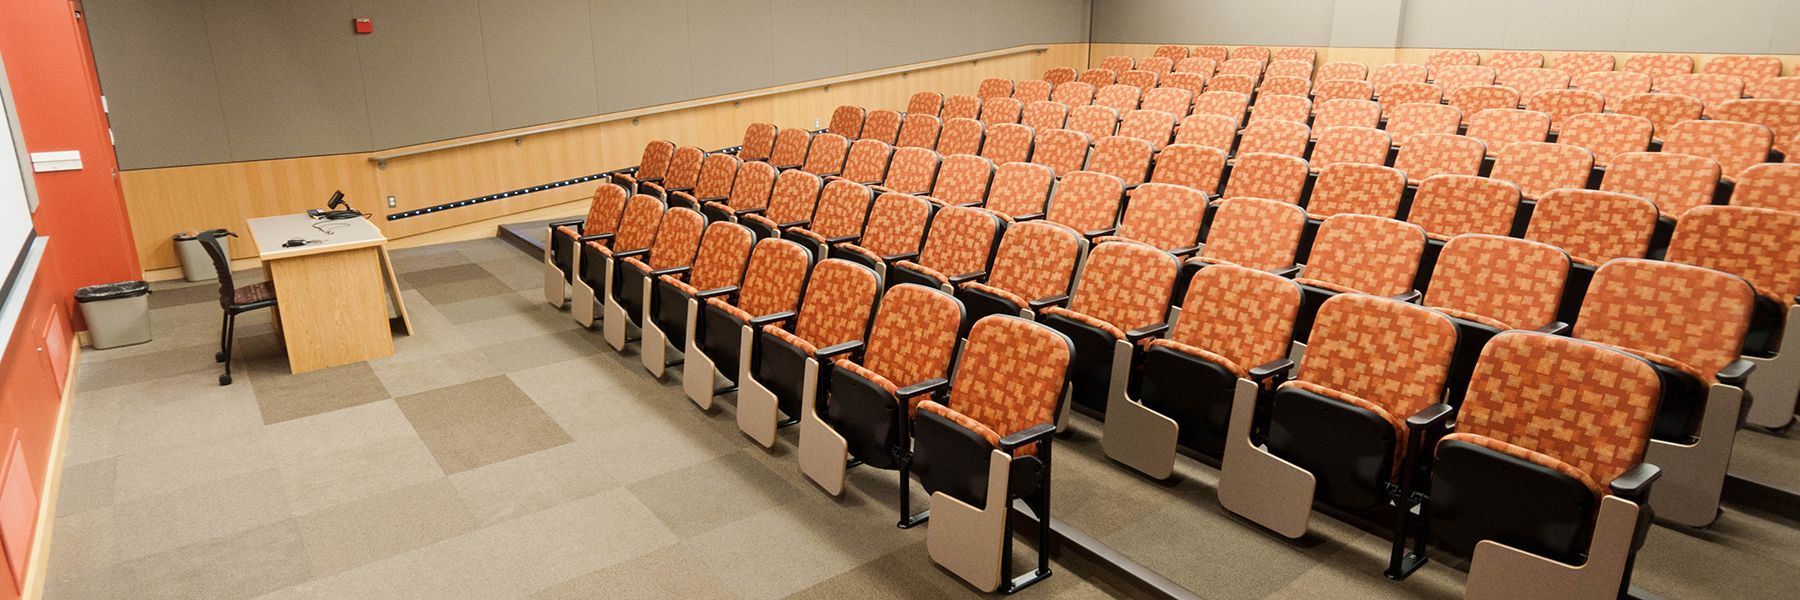 Film viewing room with theatre-style chairs